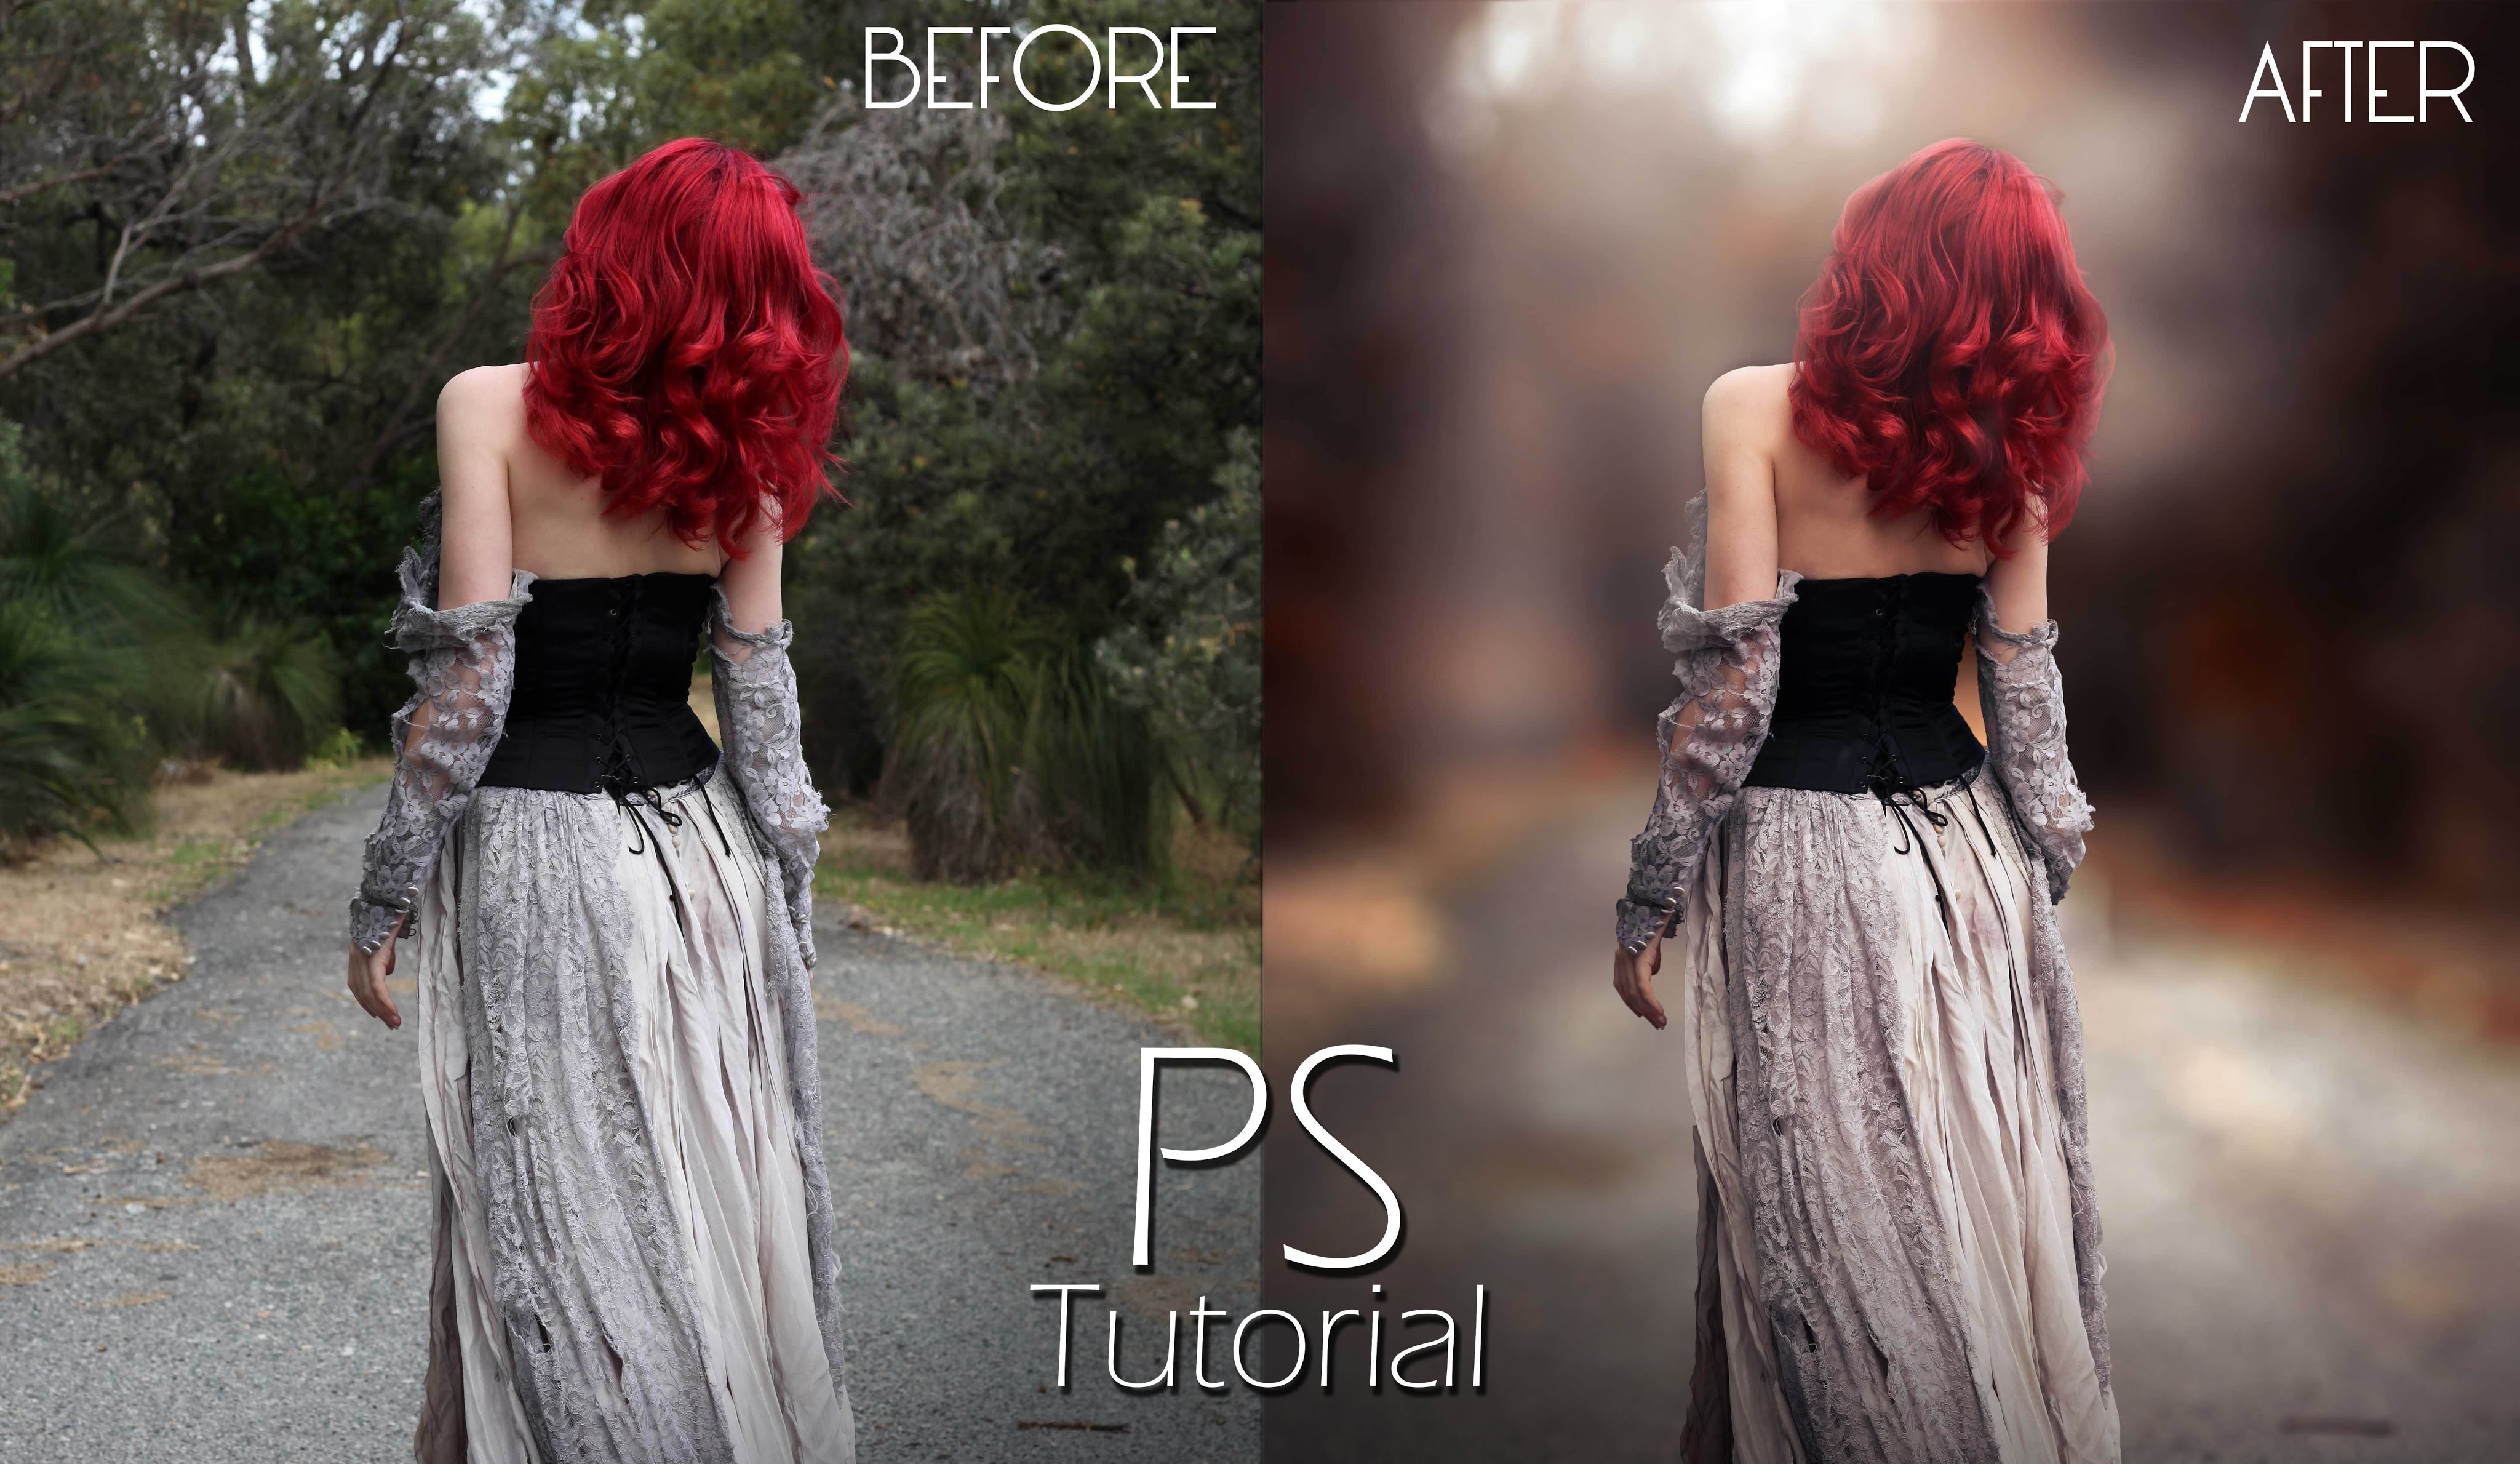 Photoshop archives modern lens magazine this step by step photoshop tutorial will take your image to the next level baditri Images